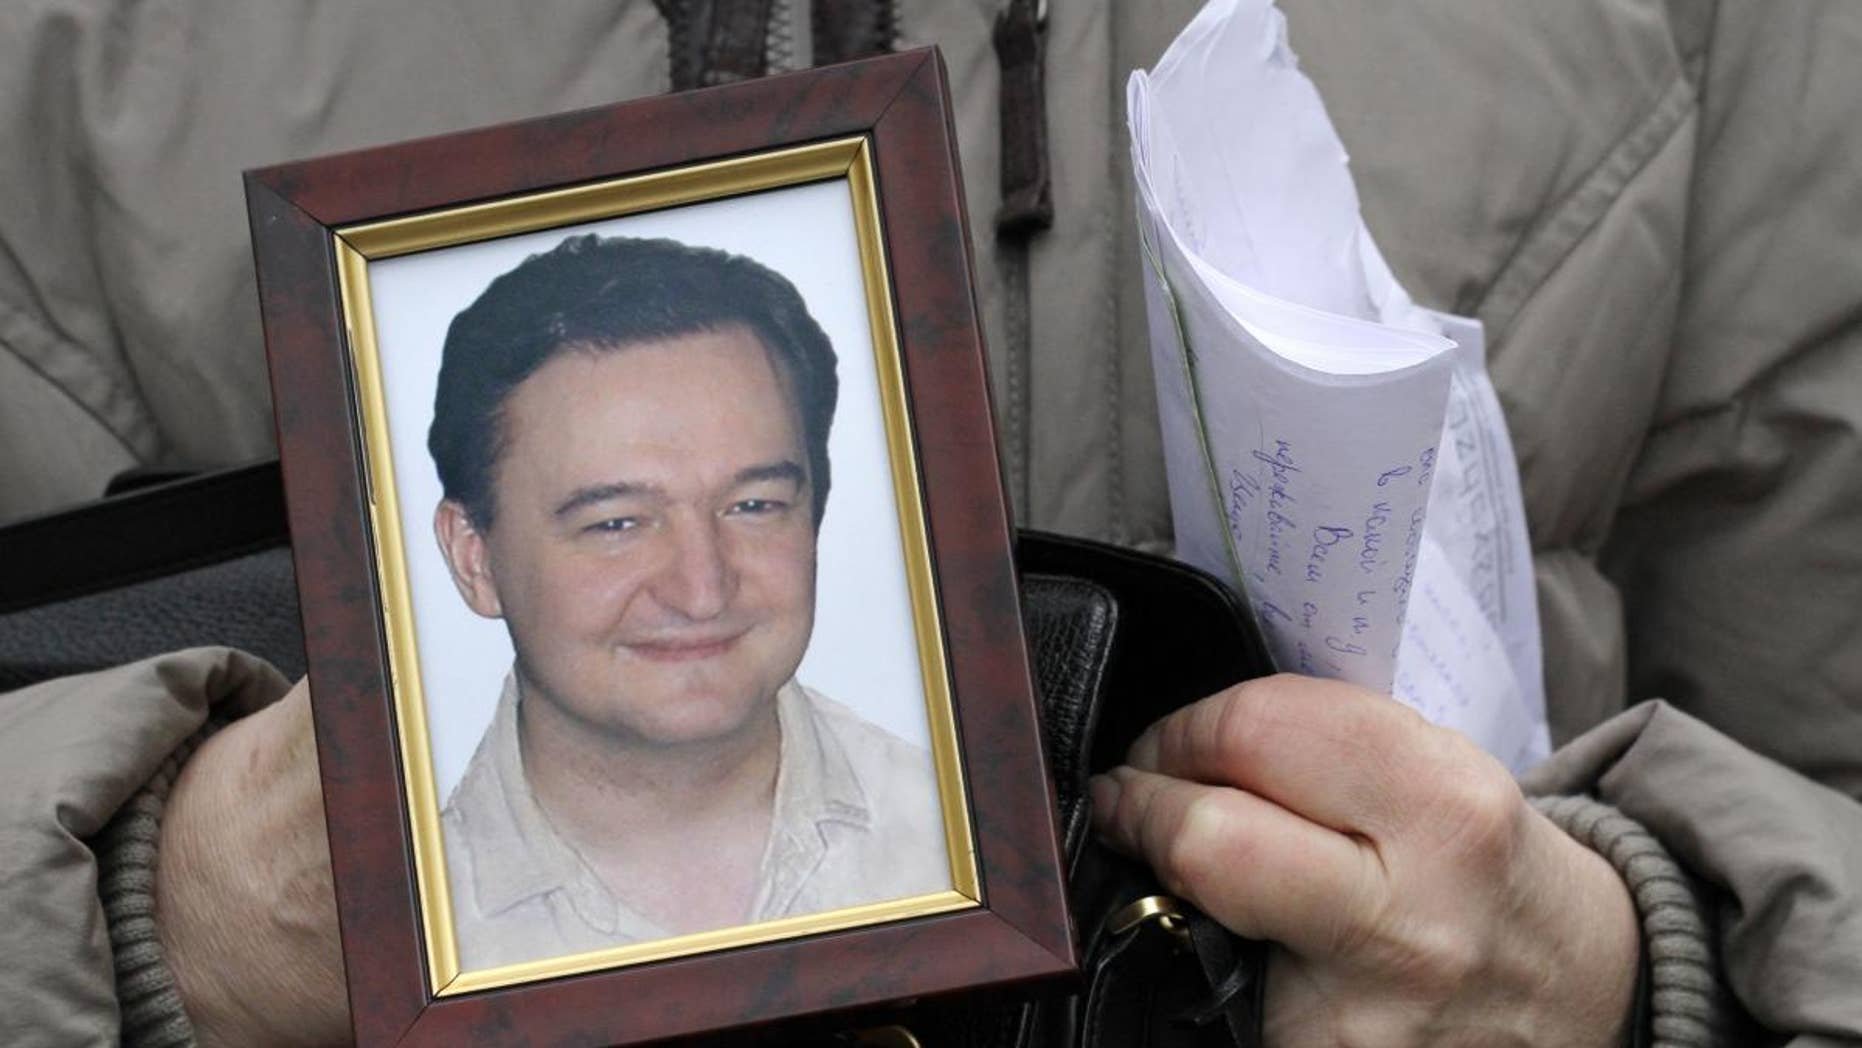 Nataliya Magnitskaya, mother of lawyer Sergei Magnitsky who died in jail two weeks ago, holds a portrait of him and letters he sent to her from jail, as she speaks in central Moscow, Russia, Nov. 30, 2009 (AP)